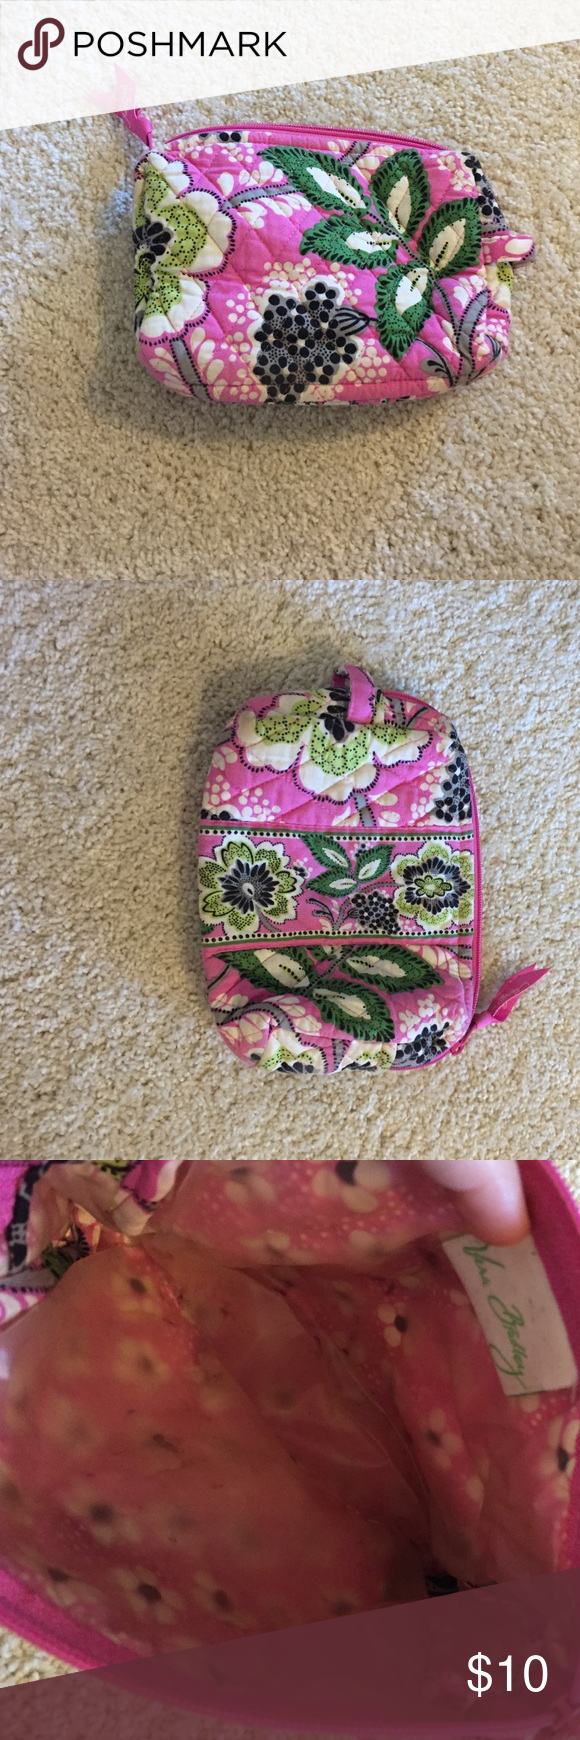 Small Vera Bradley Cosmetic Pouch Used but in great condition. Ask about my other items in this pattern Vera Bradley Bags Cosmetic Bags & Cases